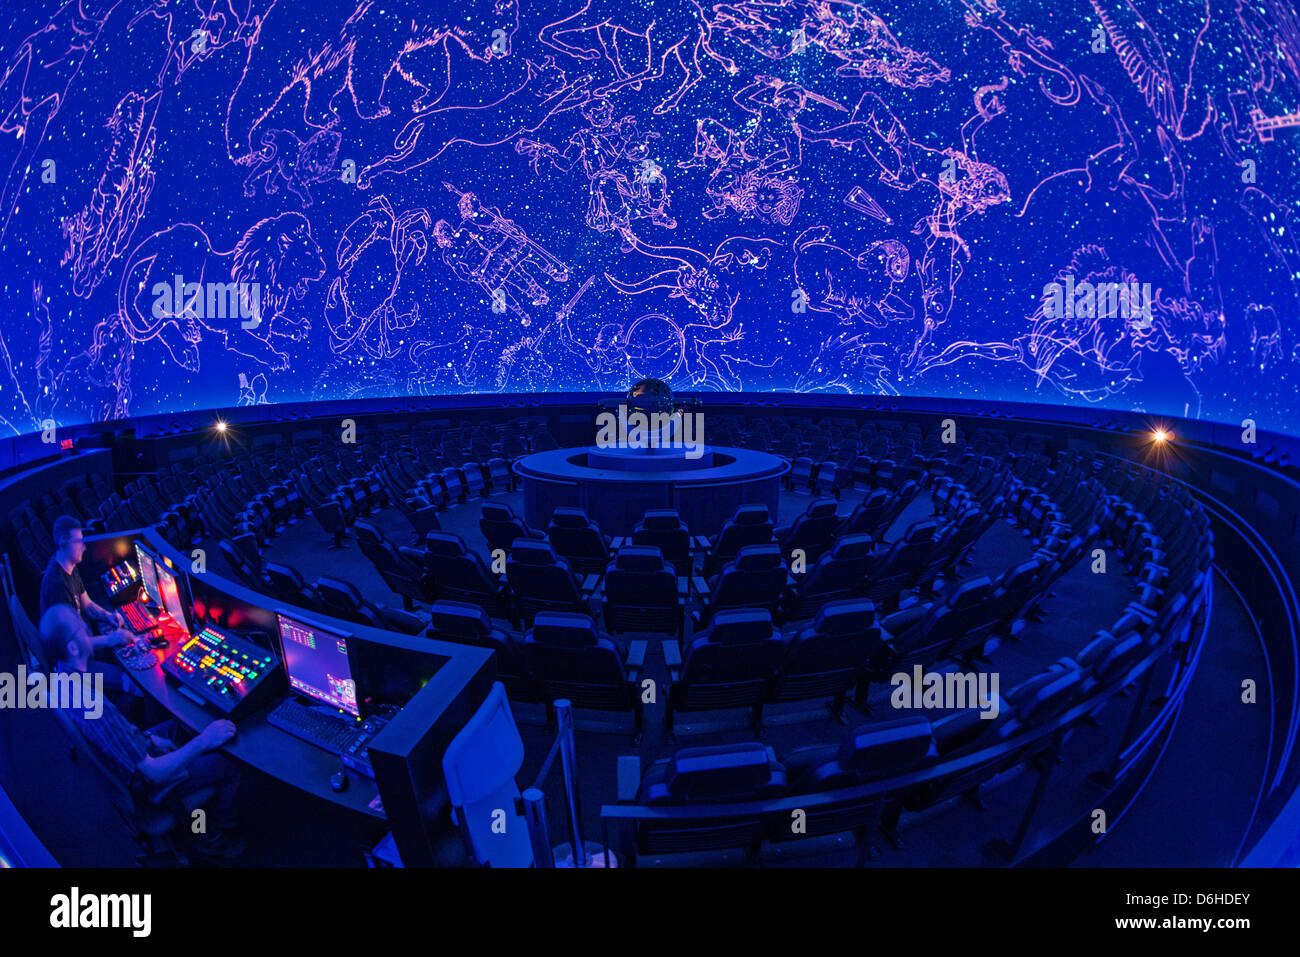 Montreal Planetarium, Olympic park complex, by architects Cardin Ramirez Julien and Aedifica, Canada - Stock Image